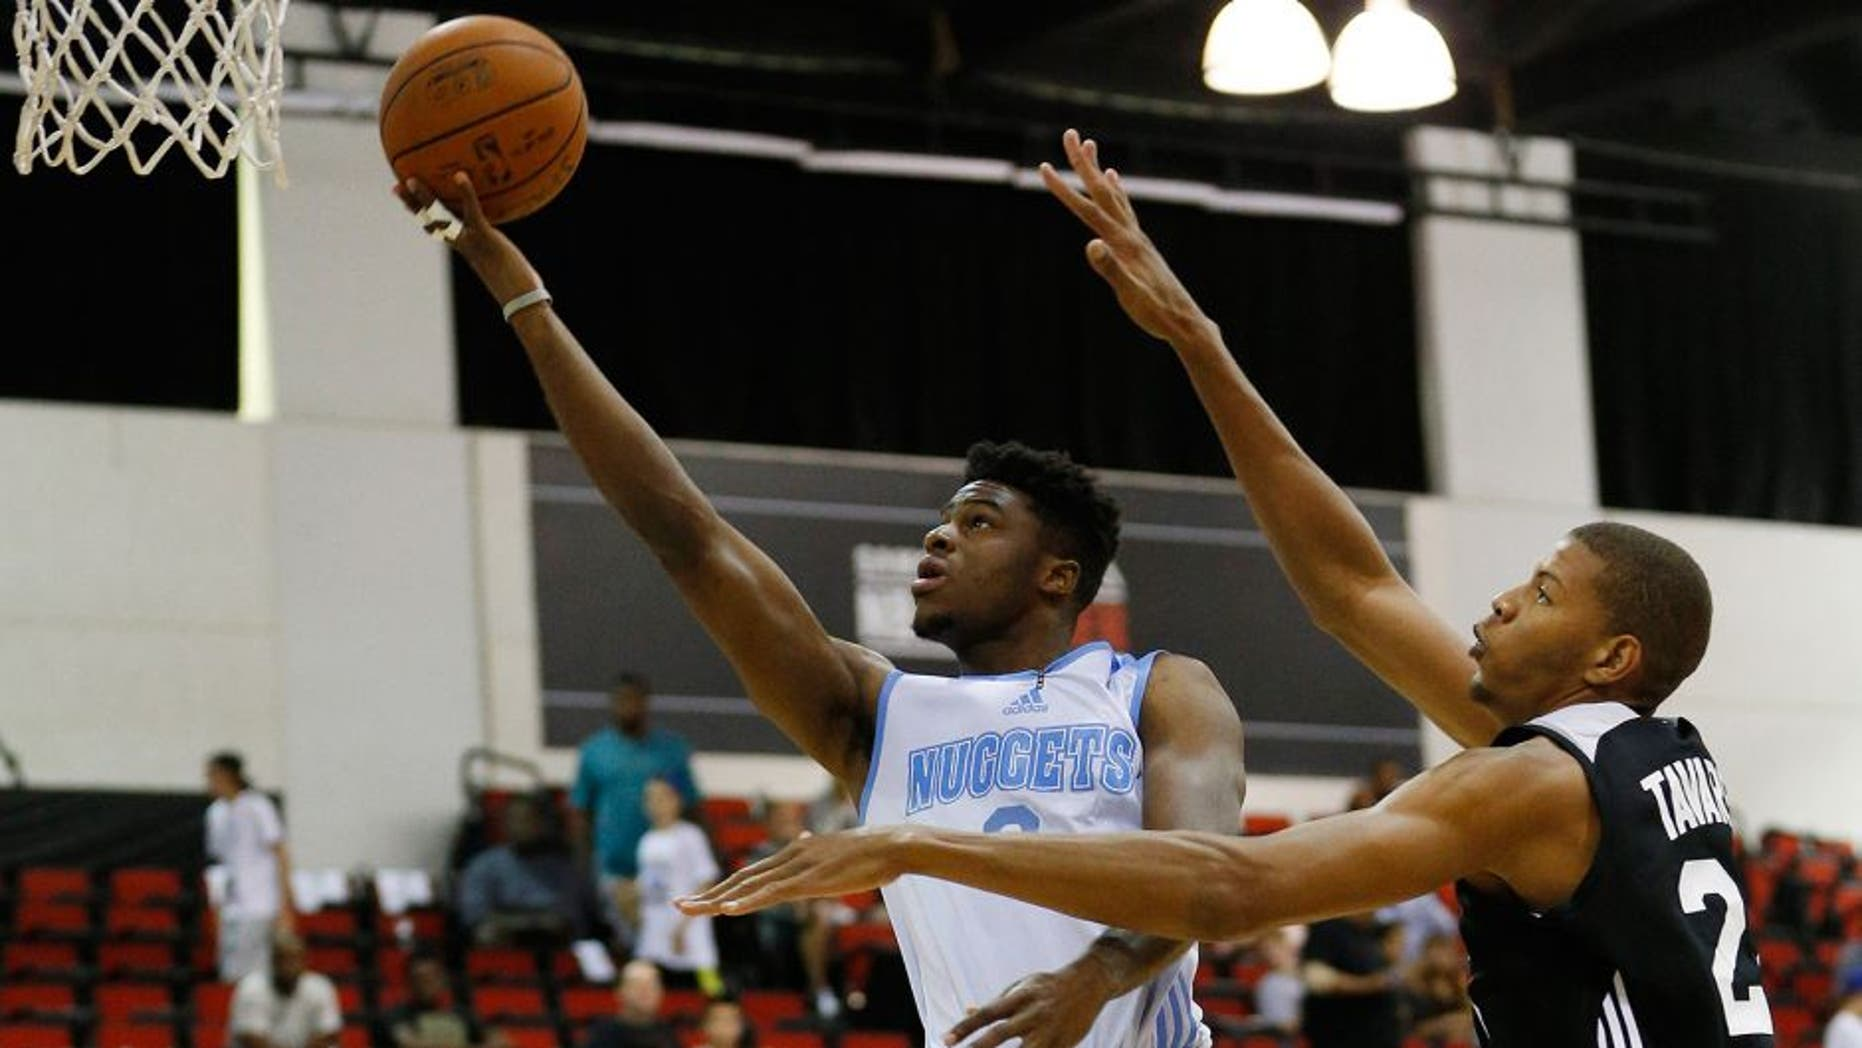 Denver Nuggets' Emmanuel Mudiay, left, goes up for a shot against the Atlanta Hawks' Walter Tavares during the first half of an NBA summer league basketball game Friday, July 10, 2015, in Las Vegas. (AP Photo/John Locher)